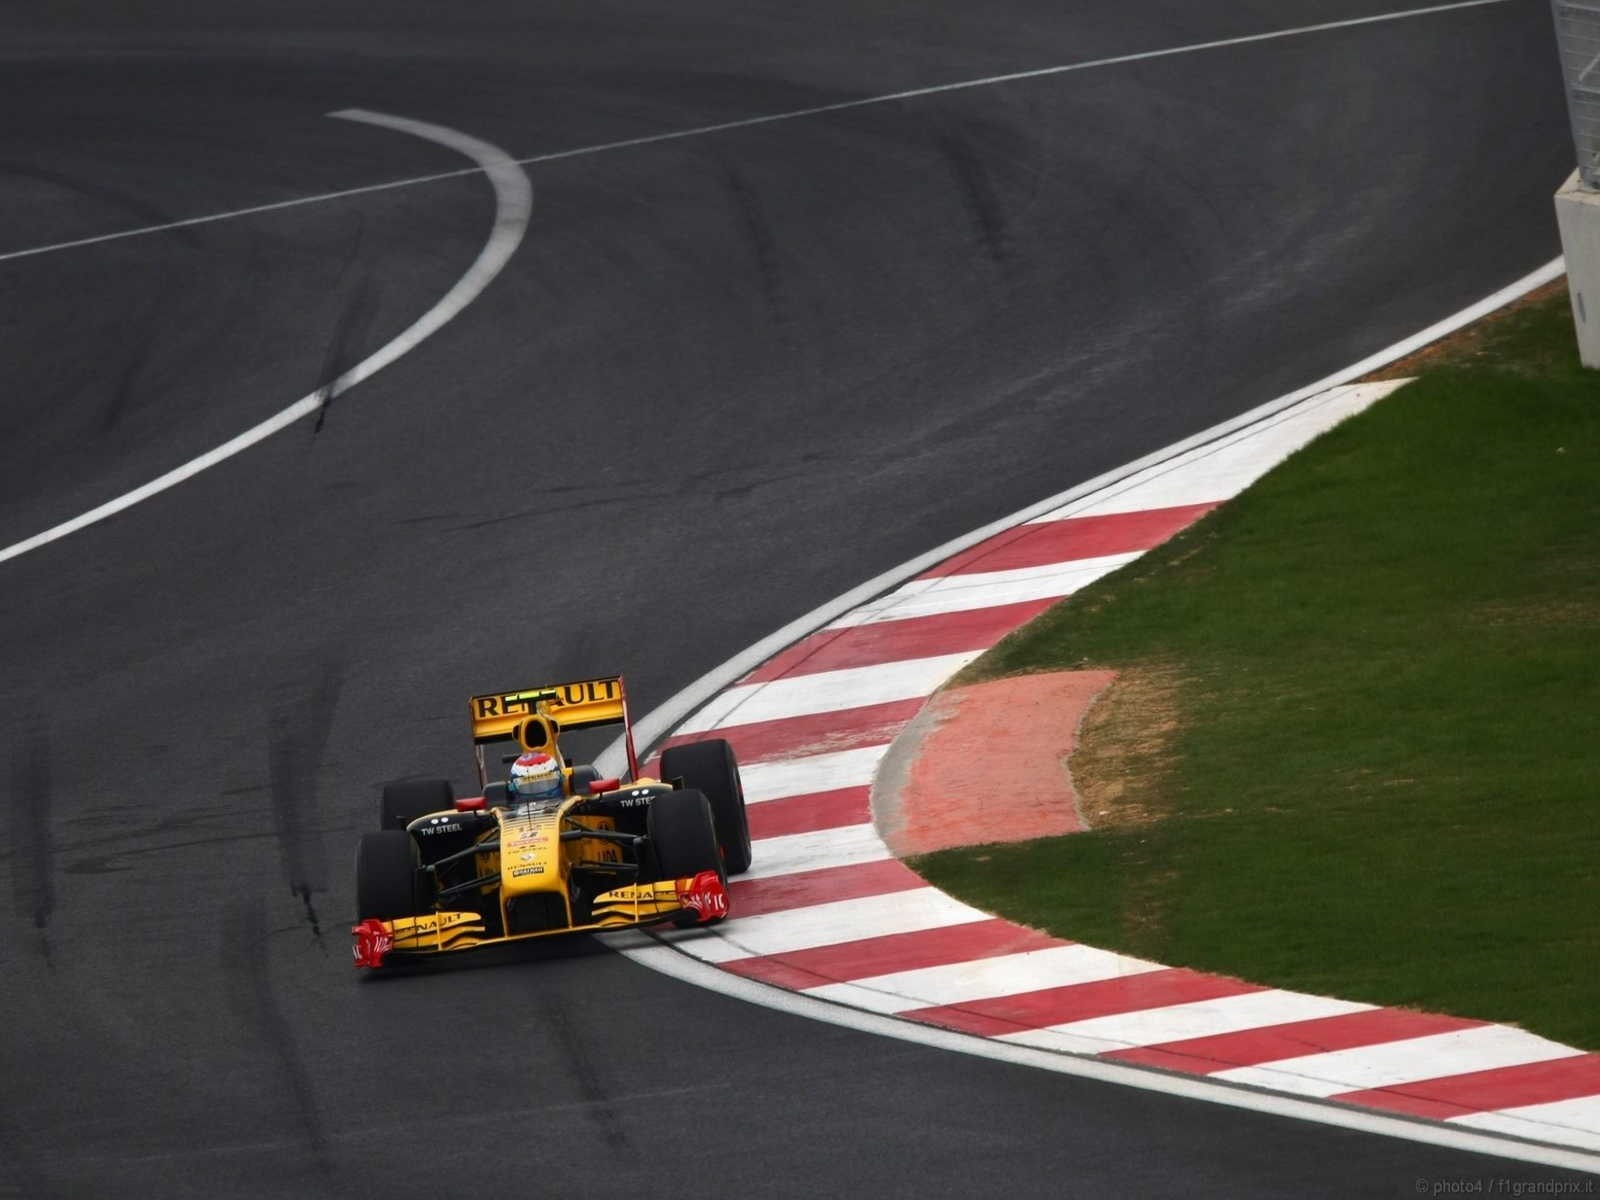 pojazdy - formula1 - gp_corea_wallpapers_000174